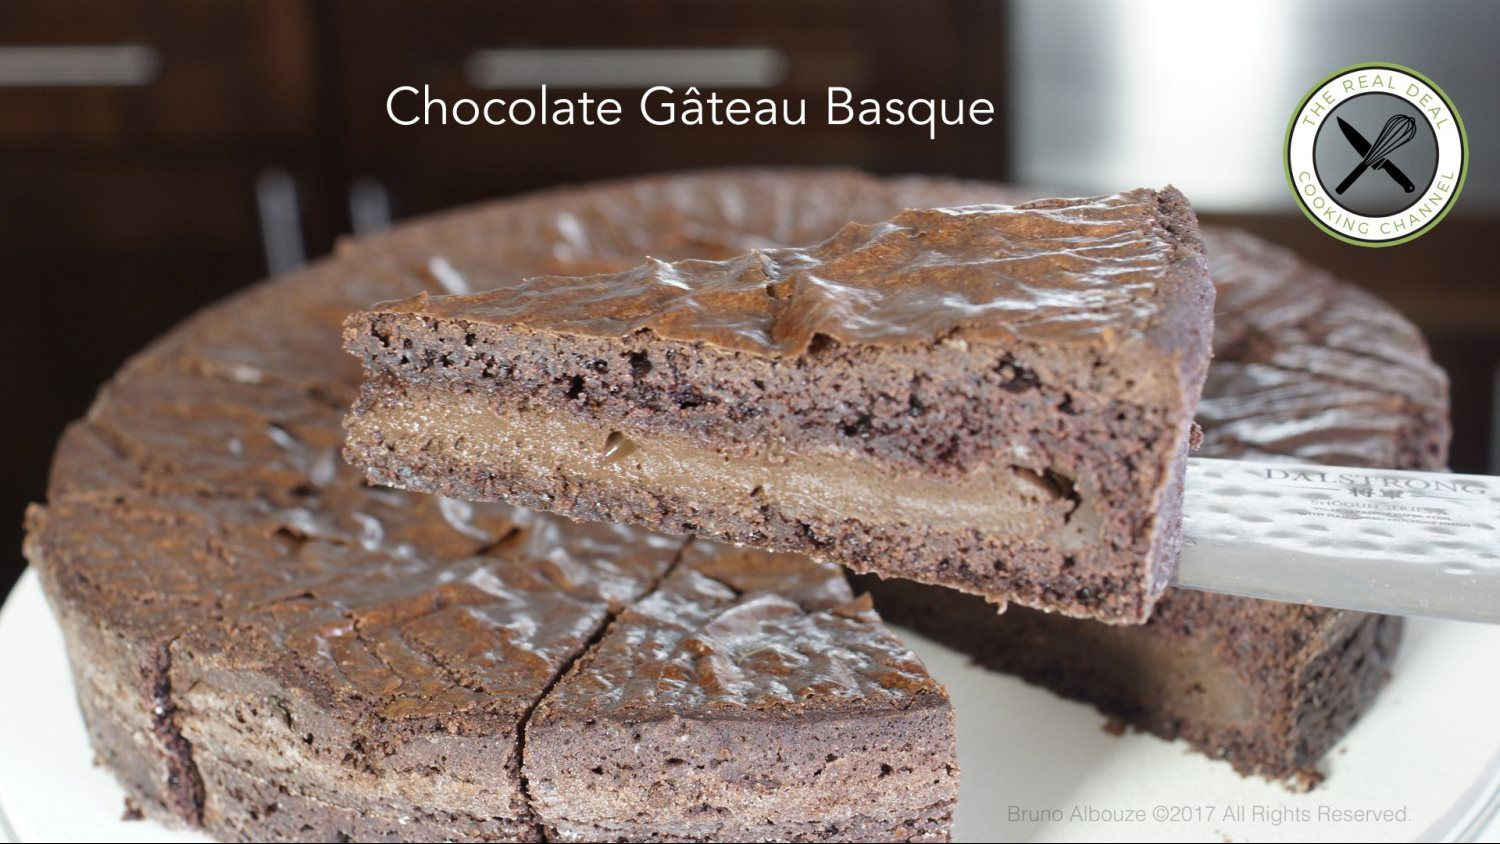 Gateau saint bruno